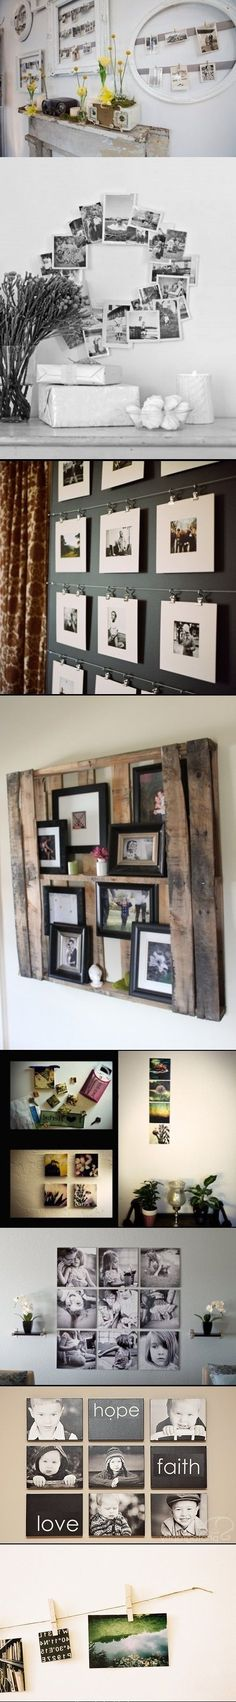 19 Incredible Ways to Display Photos: 12. Different Photos